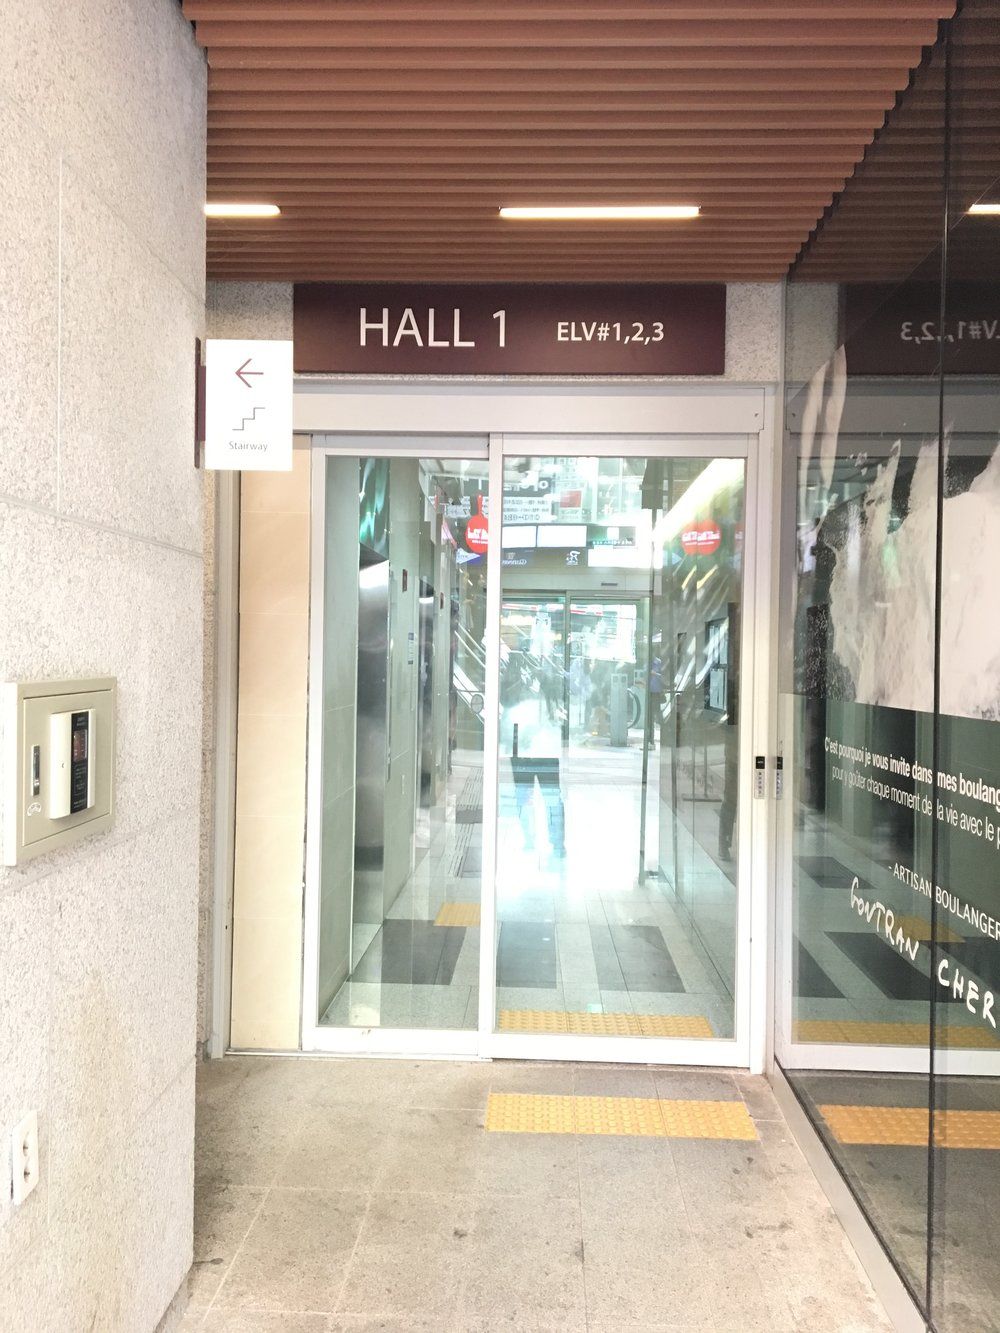 7. Hall 1 elevator, you are almost there - Please take the elevator. Go to your floor. IF you room is 555 then your room is in 5th floor. If your room is 1919, then your room is in 19th floor.